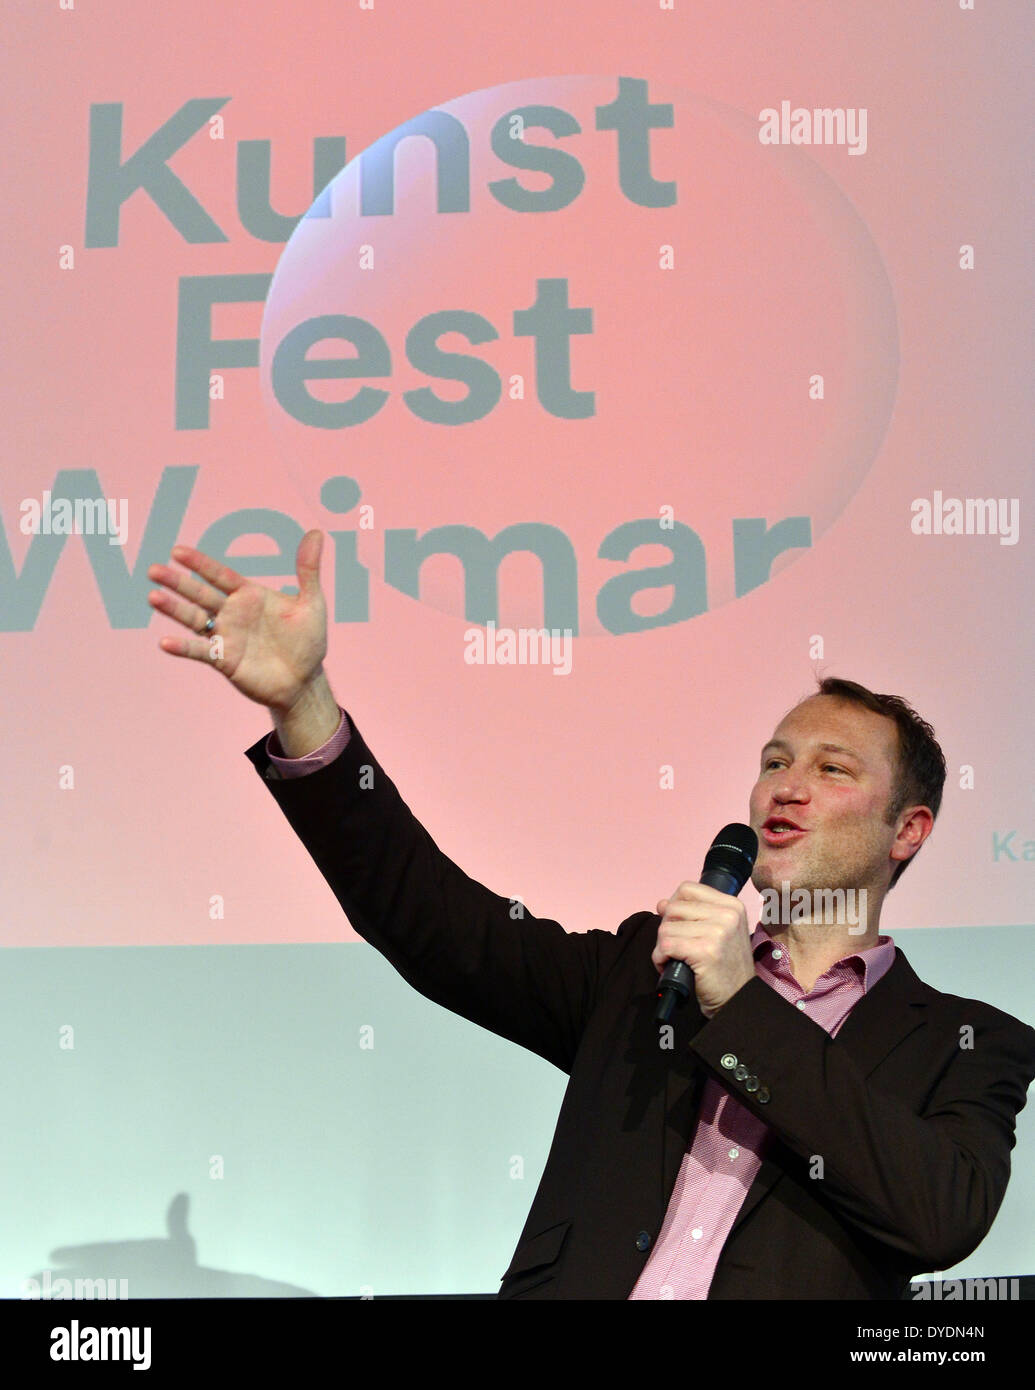 Weimar, Germany. 15th Apr, 2014. Christian Holtzhauer, the new director of the art festival 'Kunstfest Weimar' presents Stock Photo